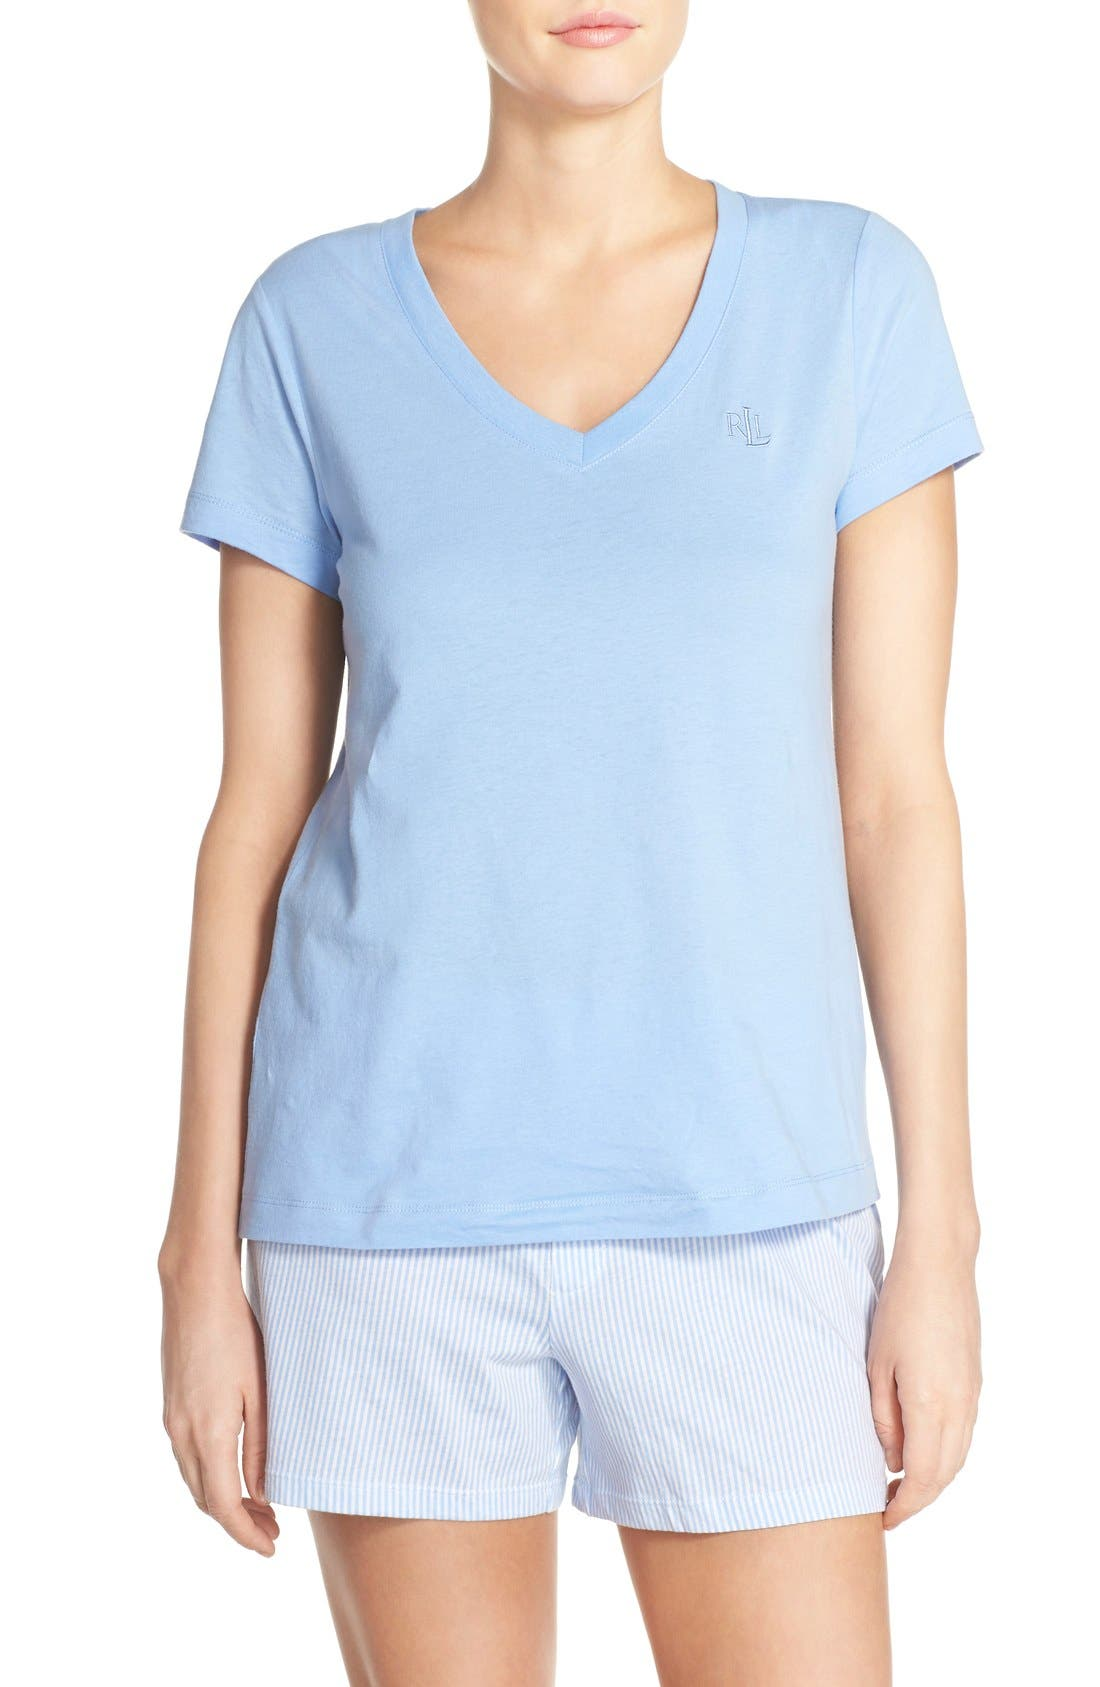 Alternate Image 1 Selected - Lauren by Ralph Lauren Sleepwear Short Sleeve Sleep Tee